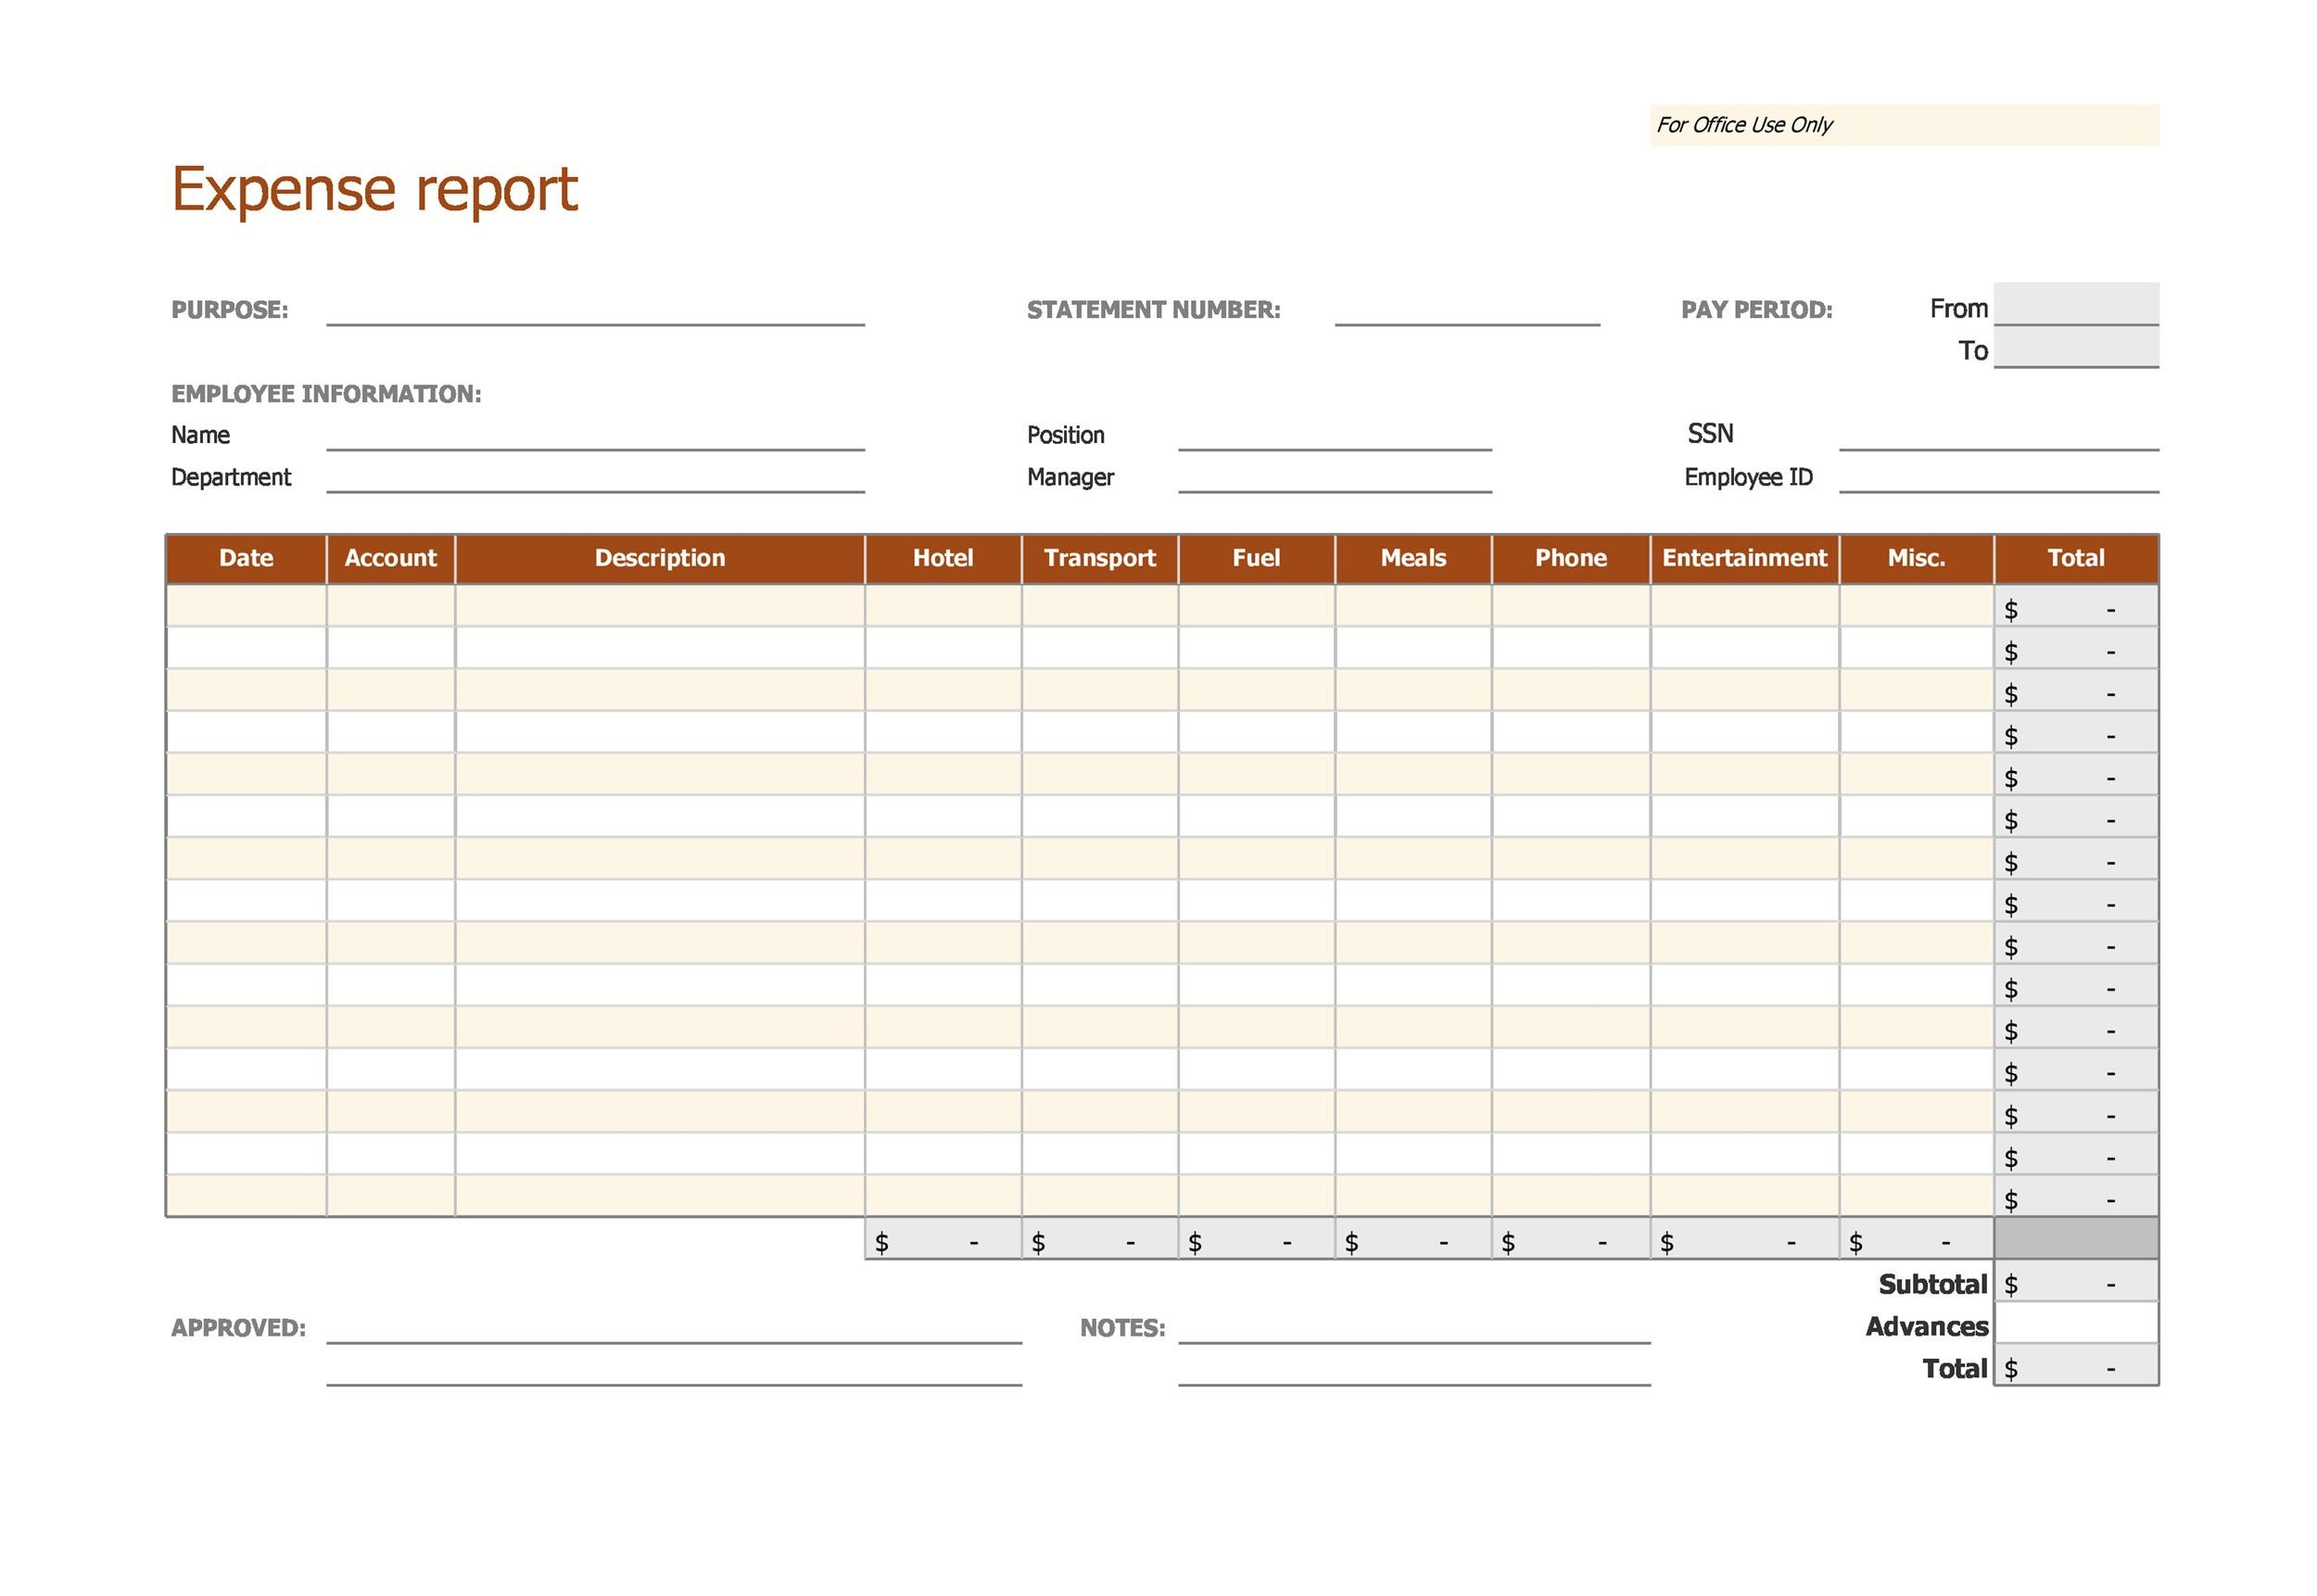 40+ Expense Report Templates to Help you Save Money - Template Lab - excel template expense report